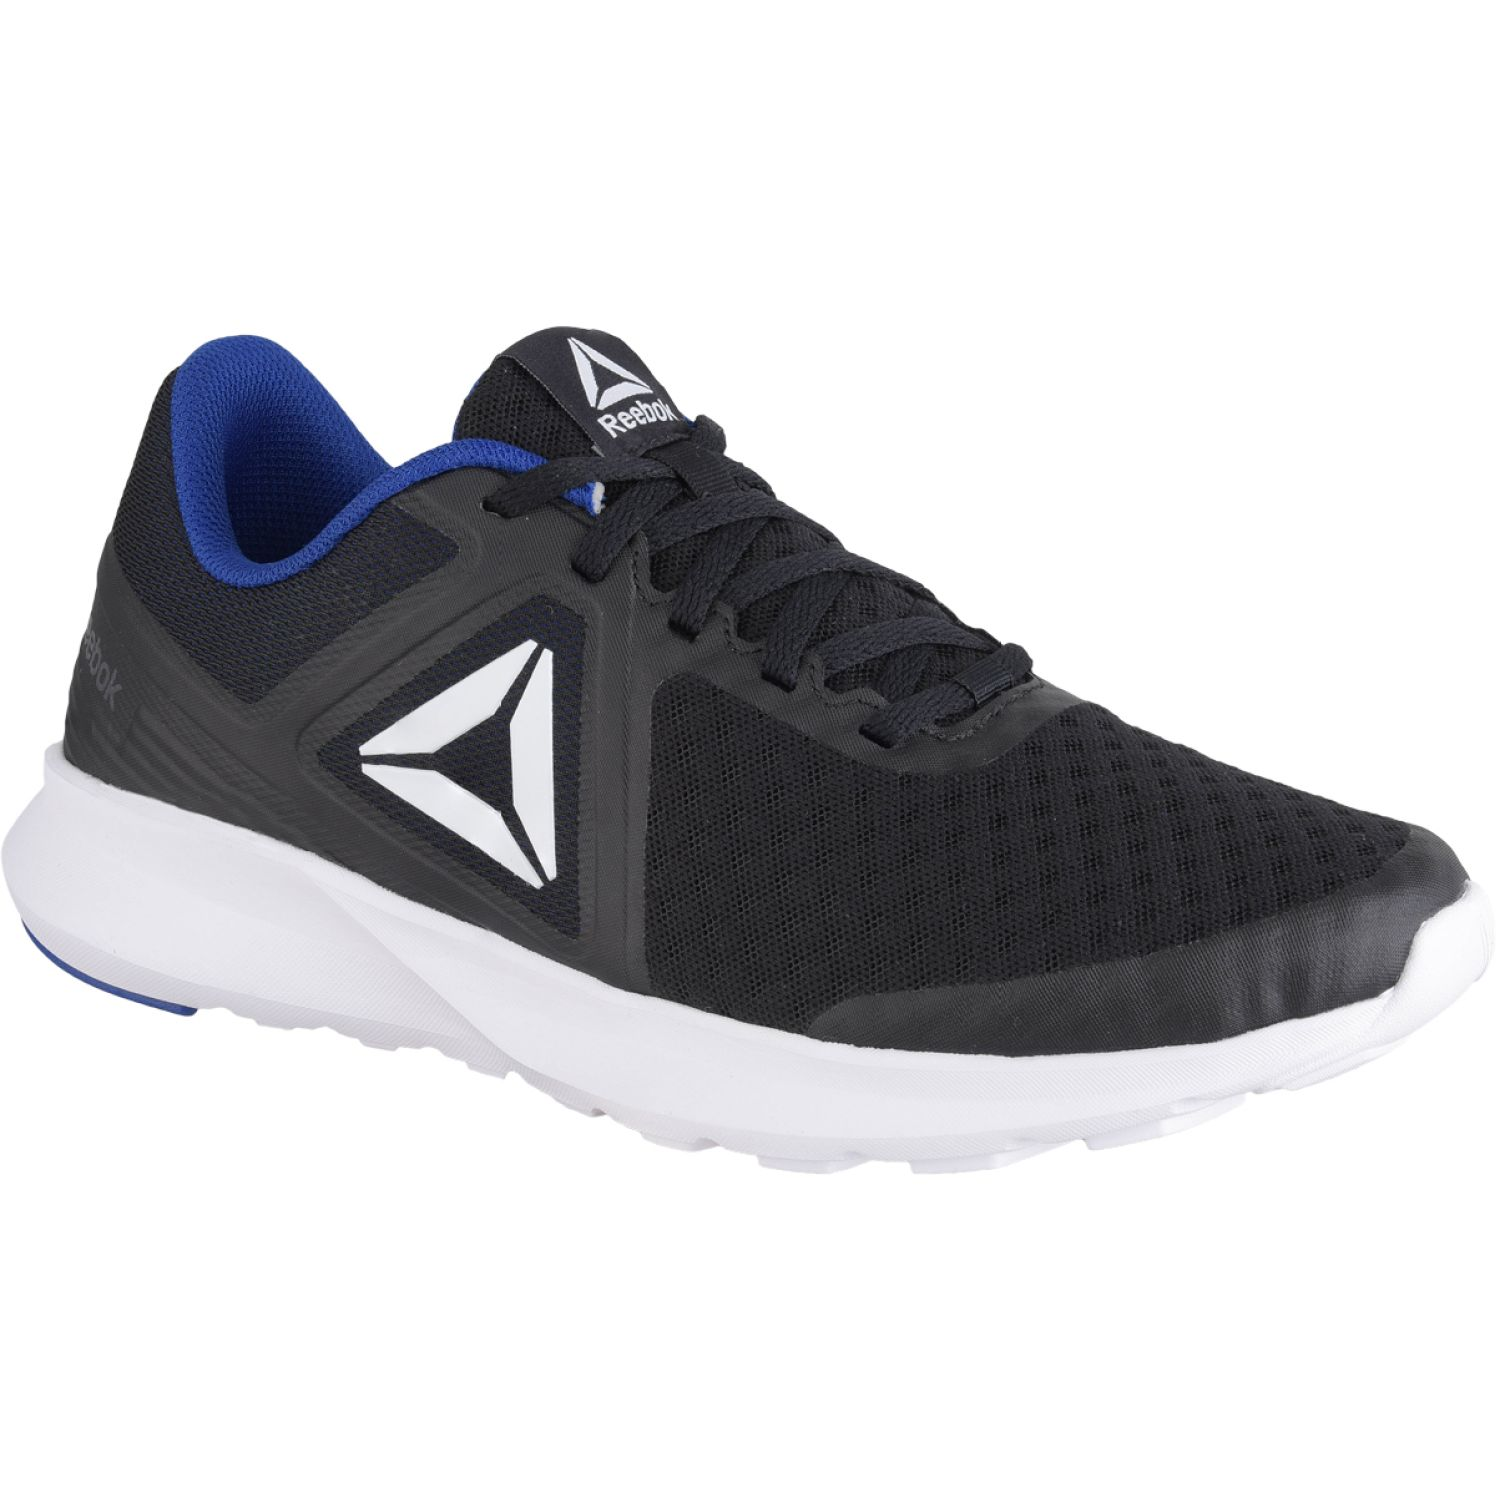 Reebok REEBOK SPEED BREEZE Negro / blanco Trail Running